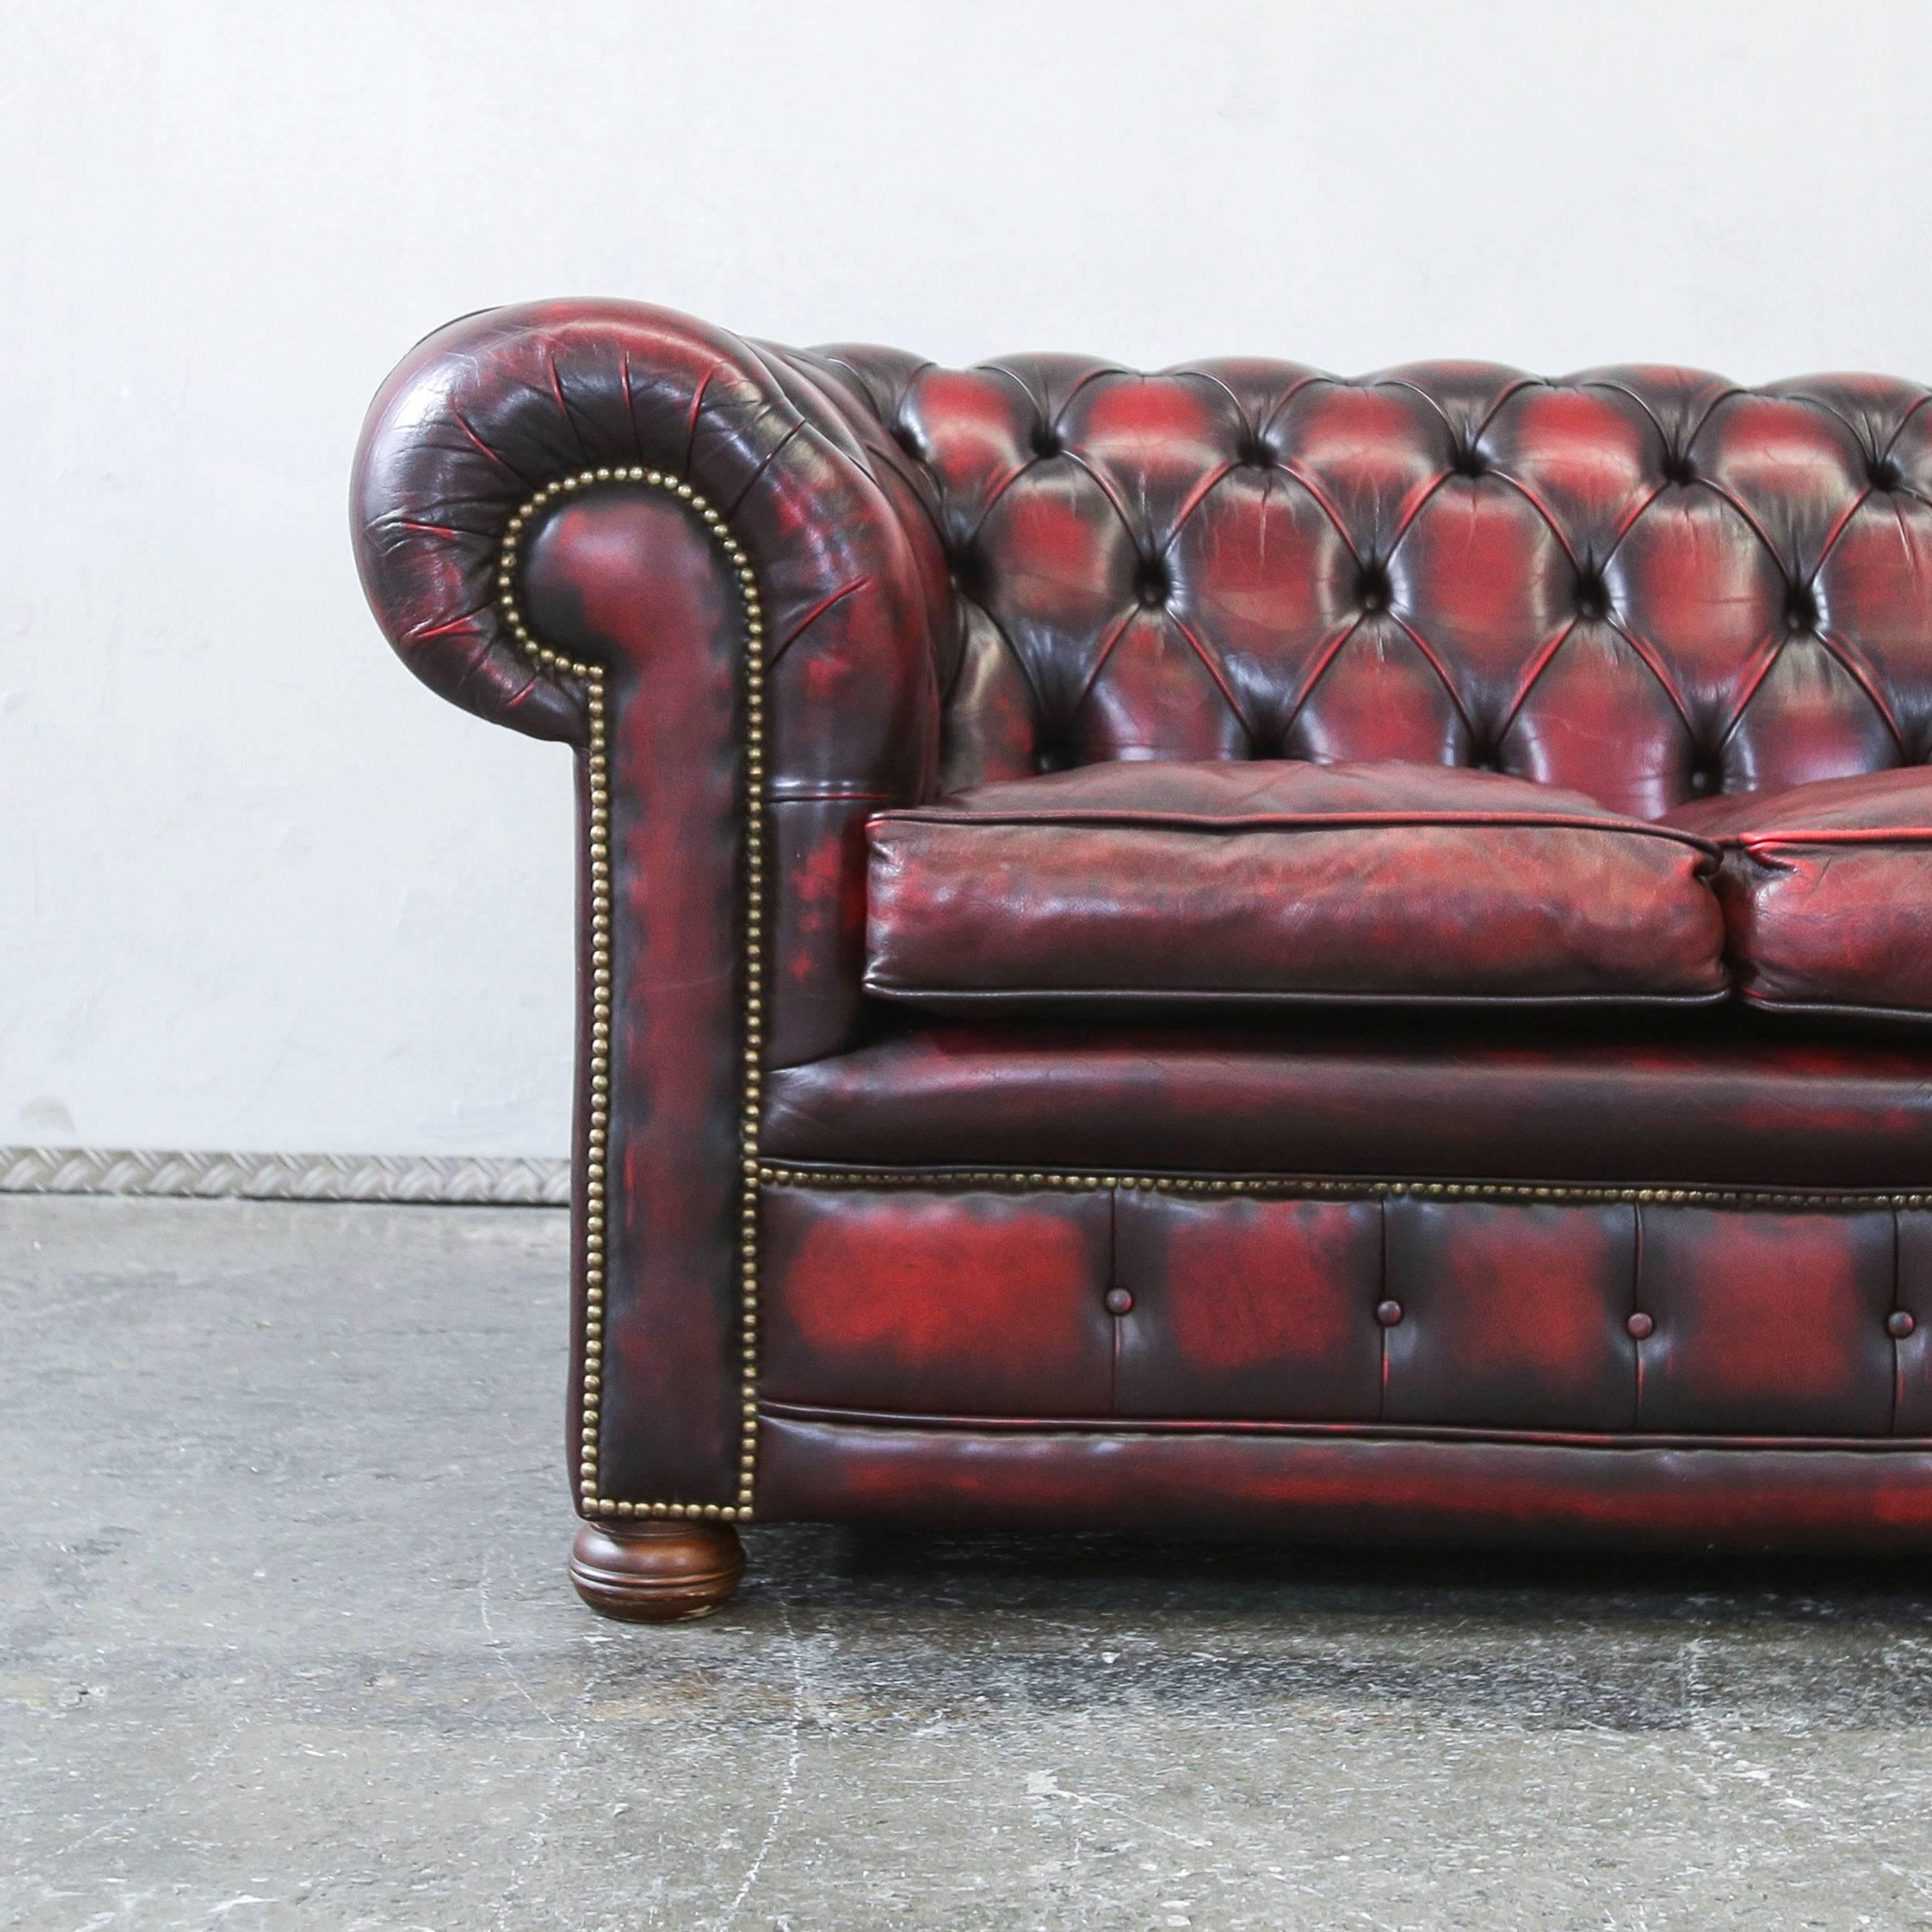 sofa rot amazing luxus pur barock sofa rot gold with sofa rot sofa navona sitzer echtleder. Black Bedroom Furniture Sets. Home Design Ideas